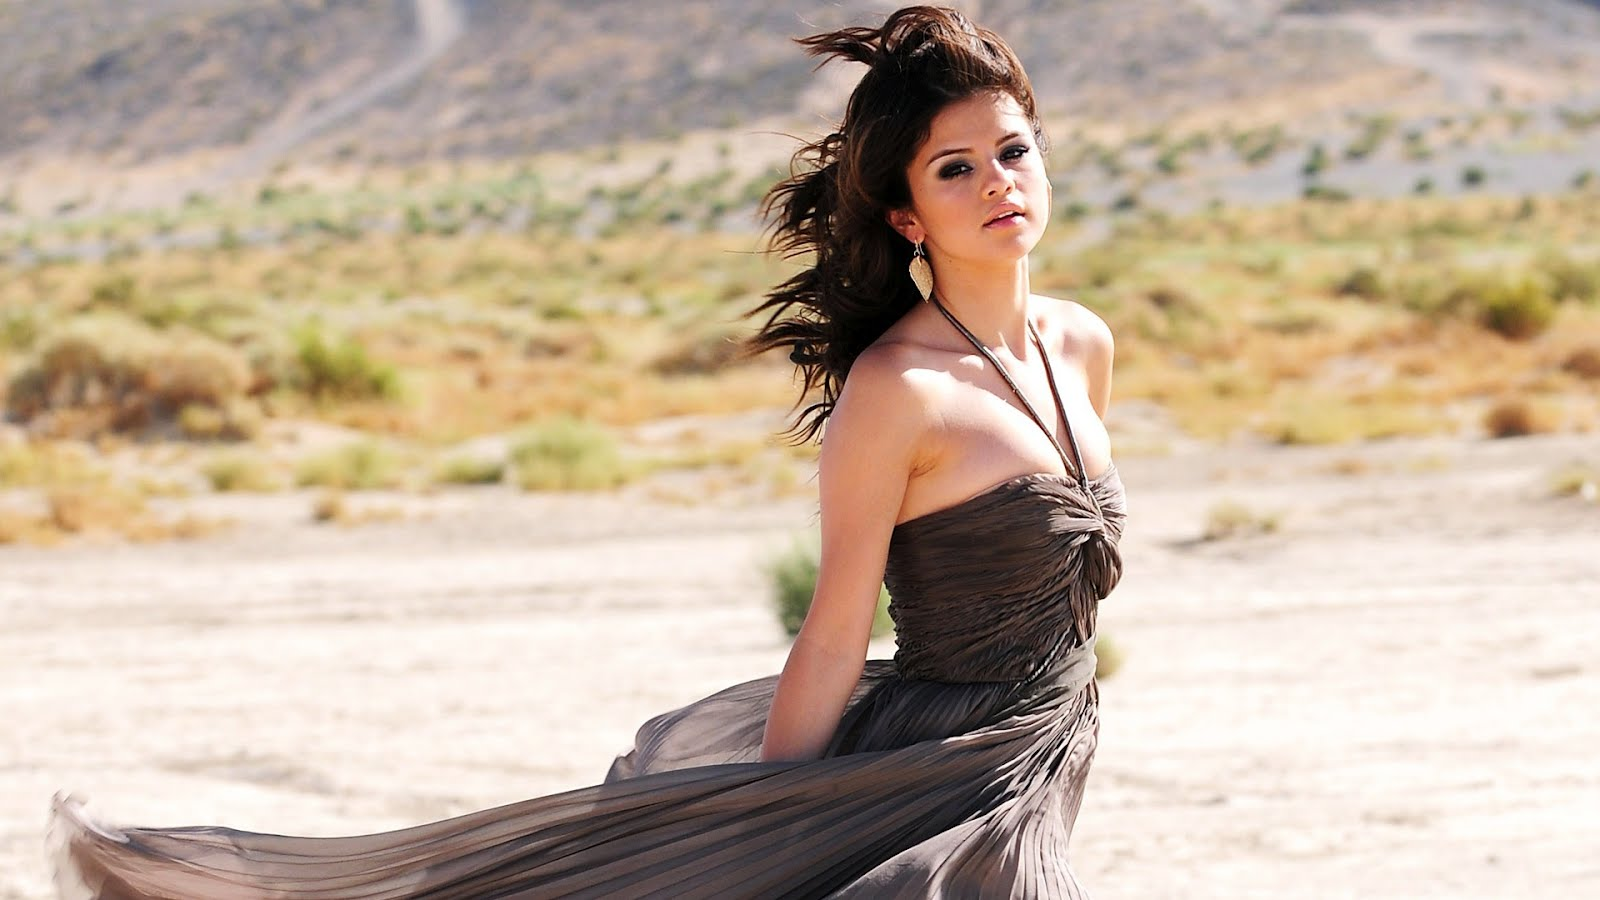 selena gomez hd wallpapers | car design and mechanical engineering